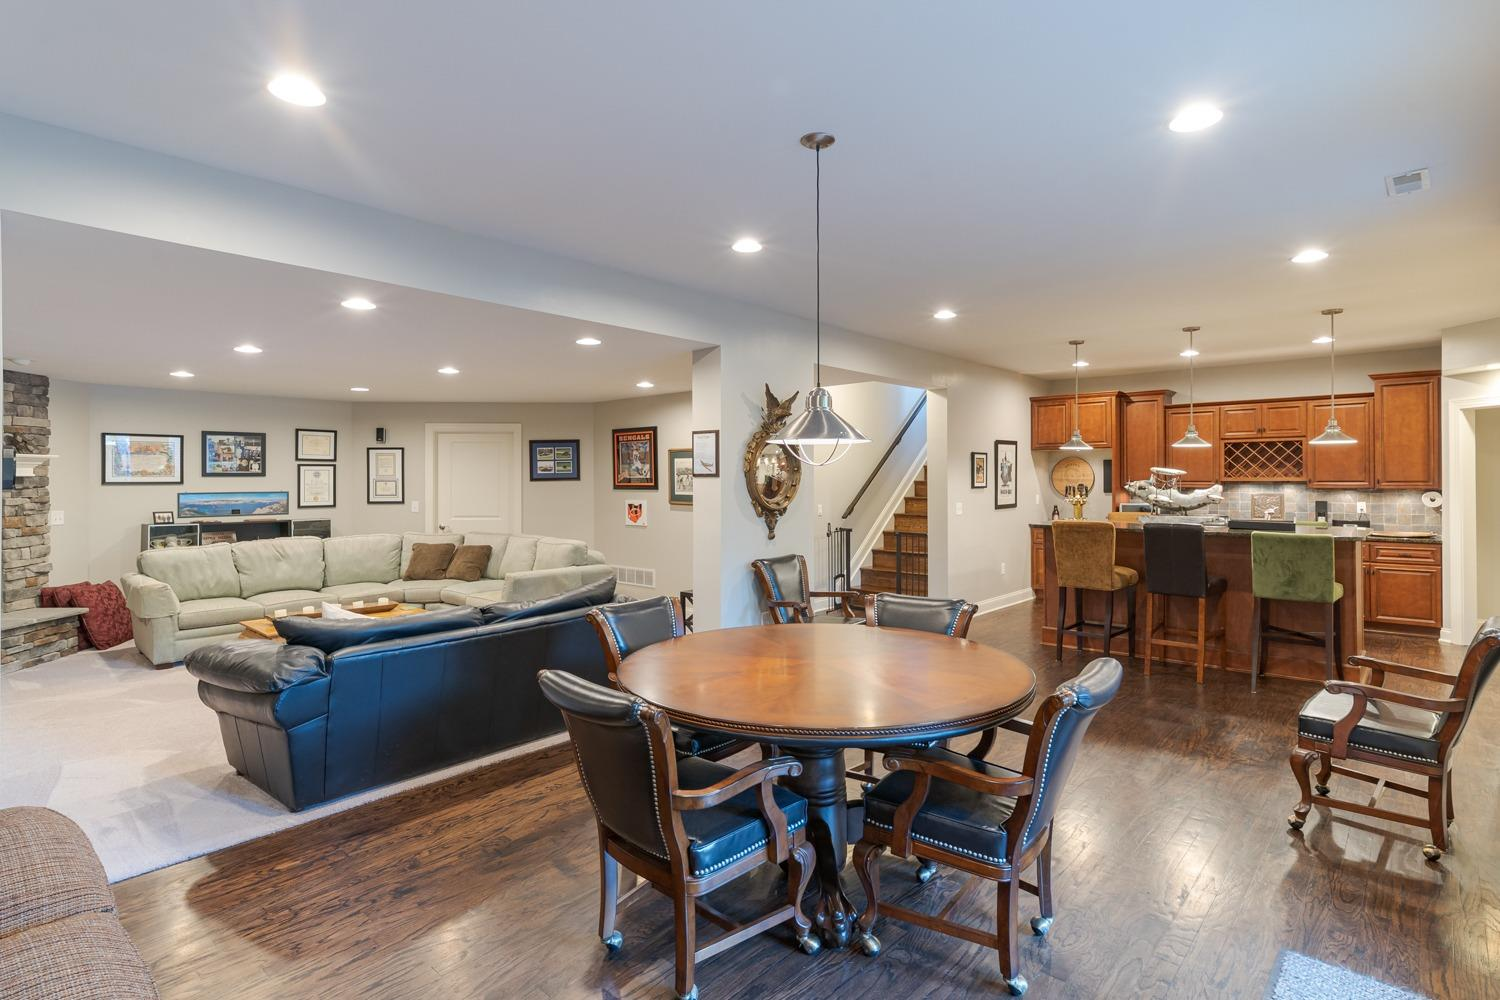 Lower level gaming table area with view of family room/recreation room and wet bar.